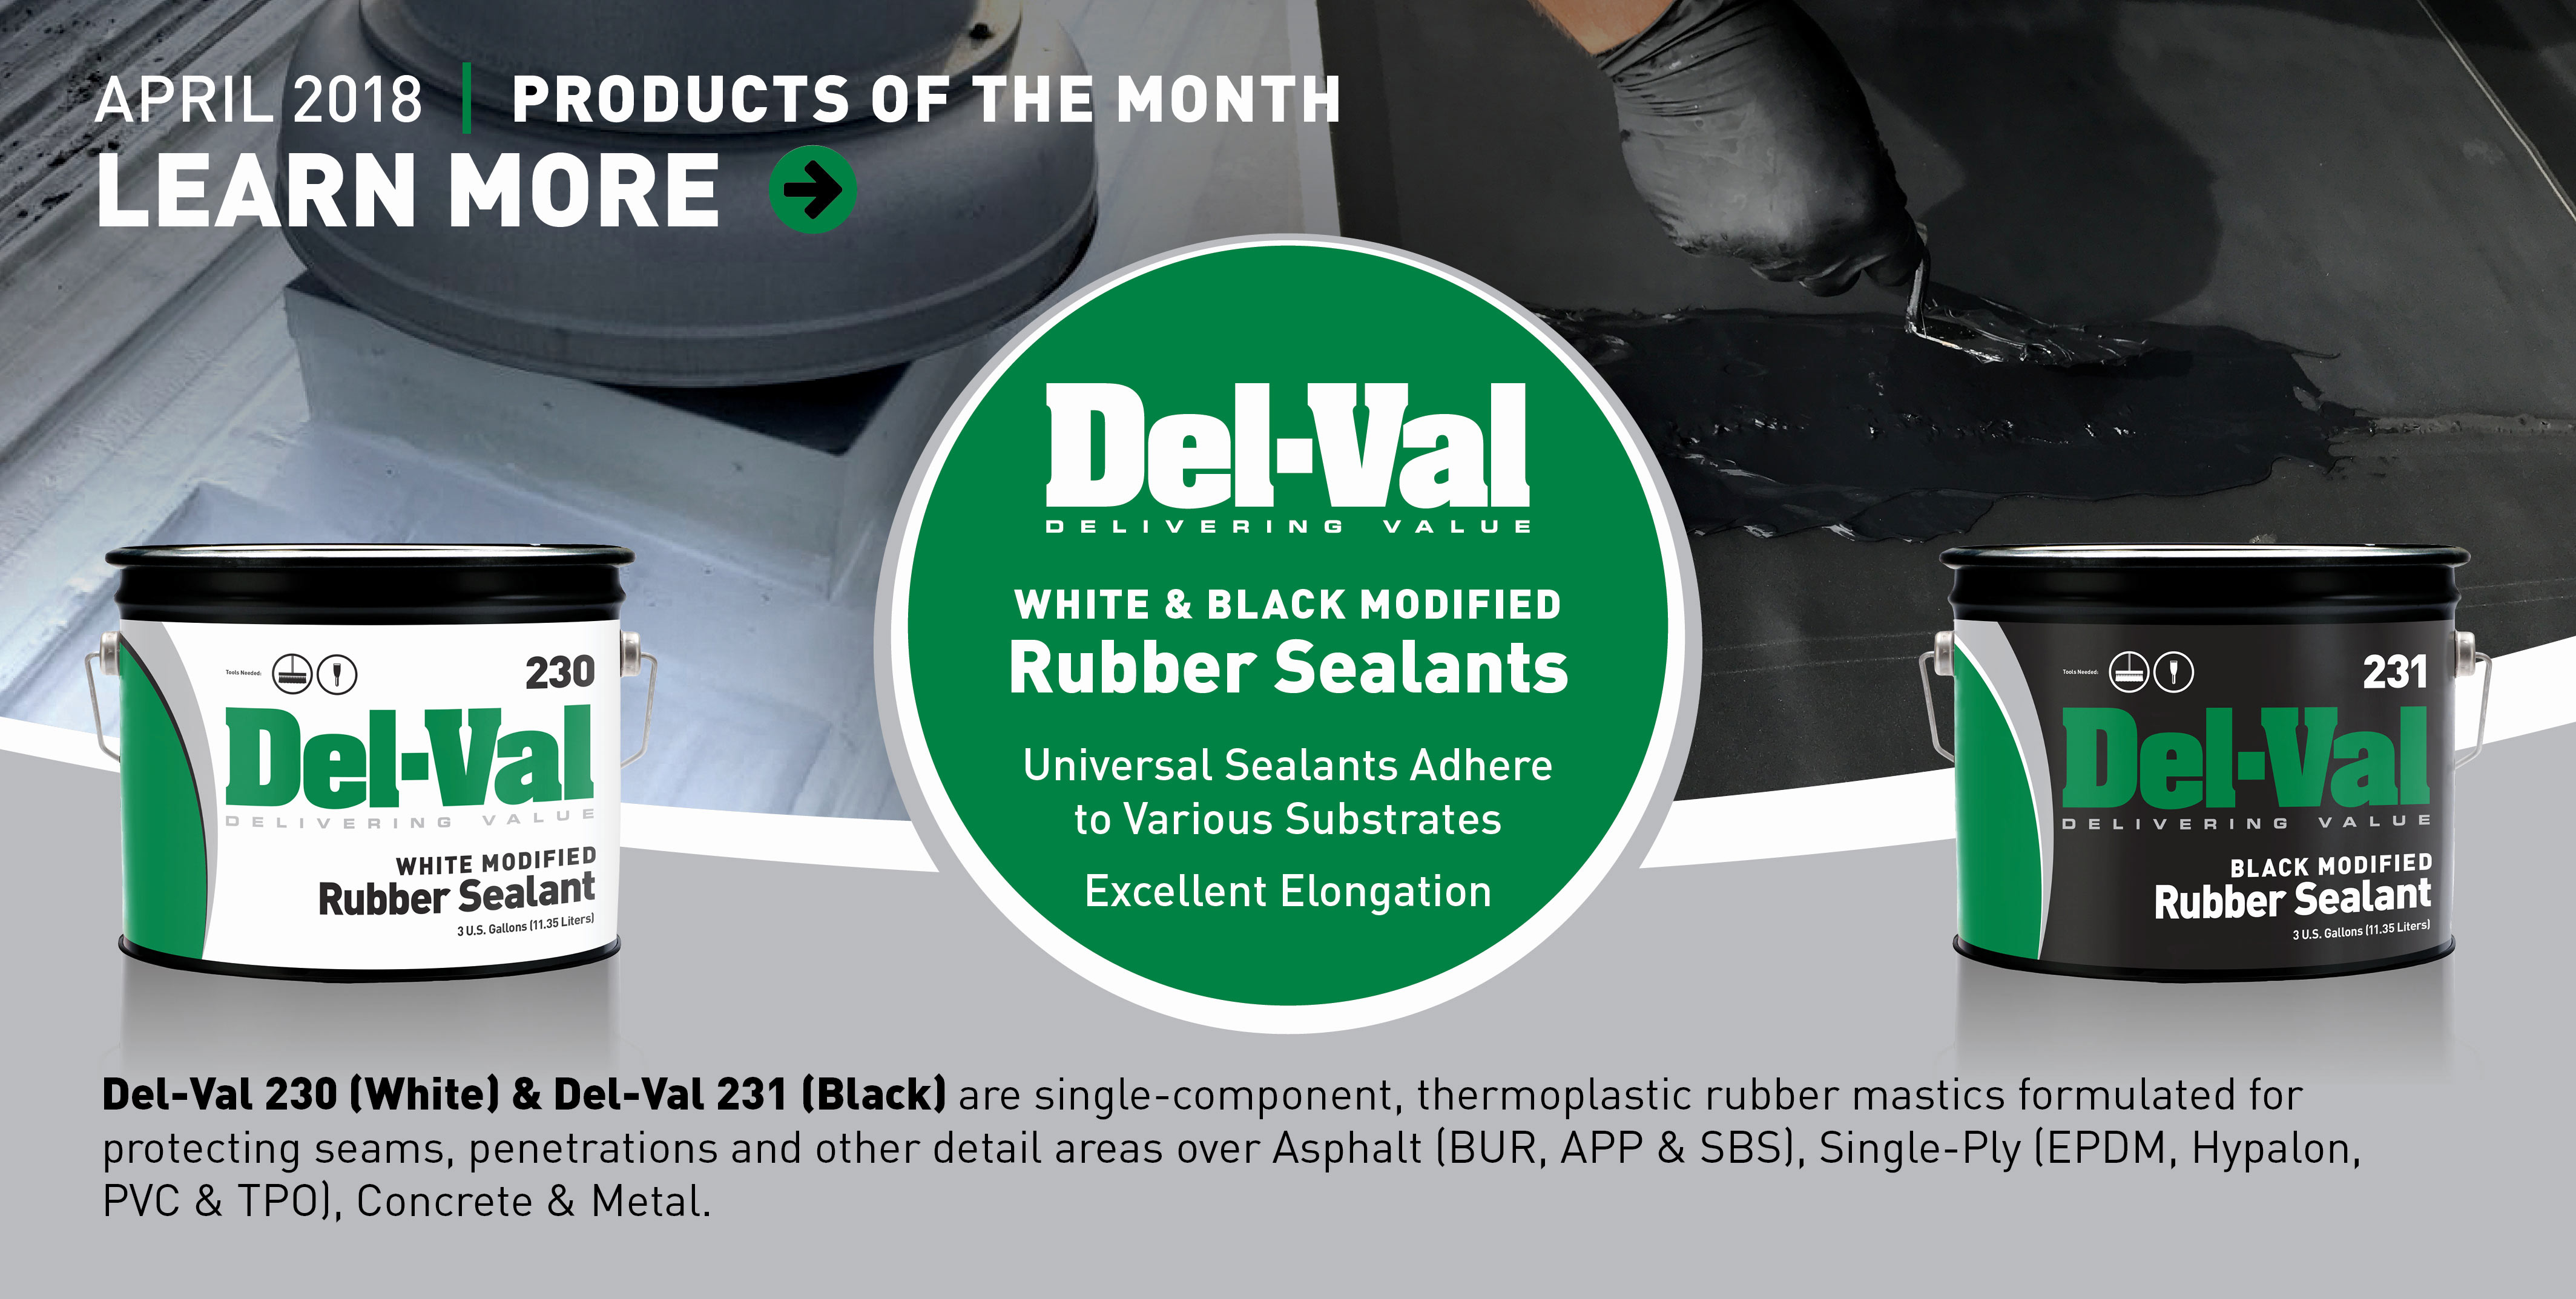 Image of Featured Products of the Month for April 2018: Del-Val 230 & 231